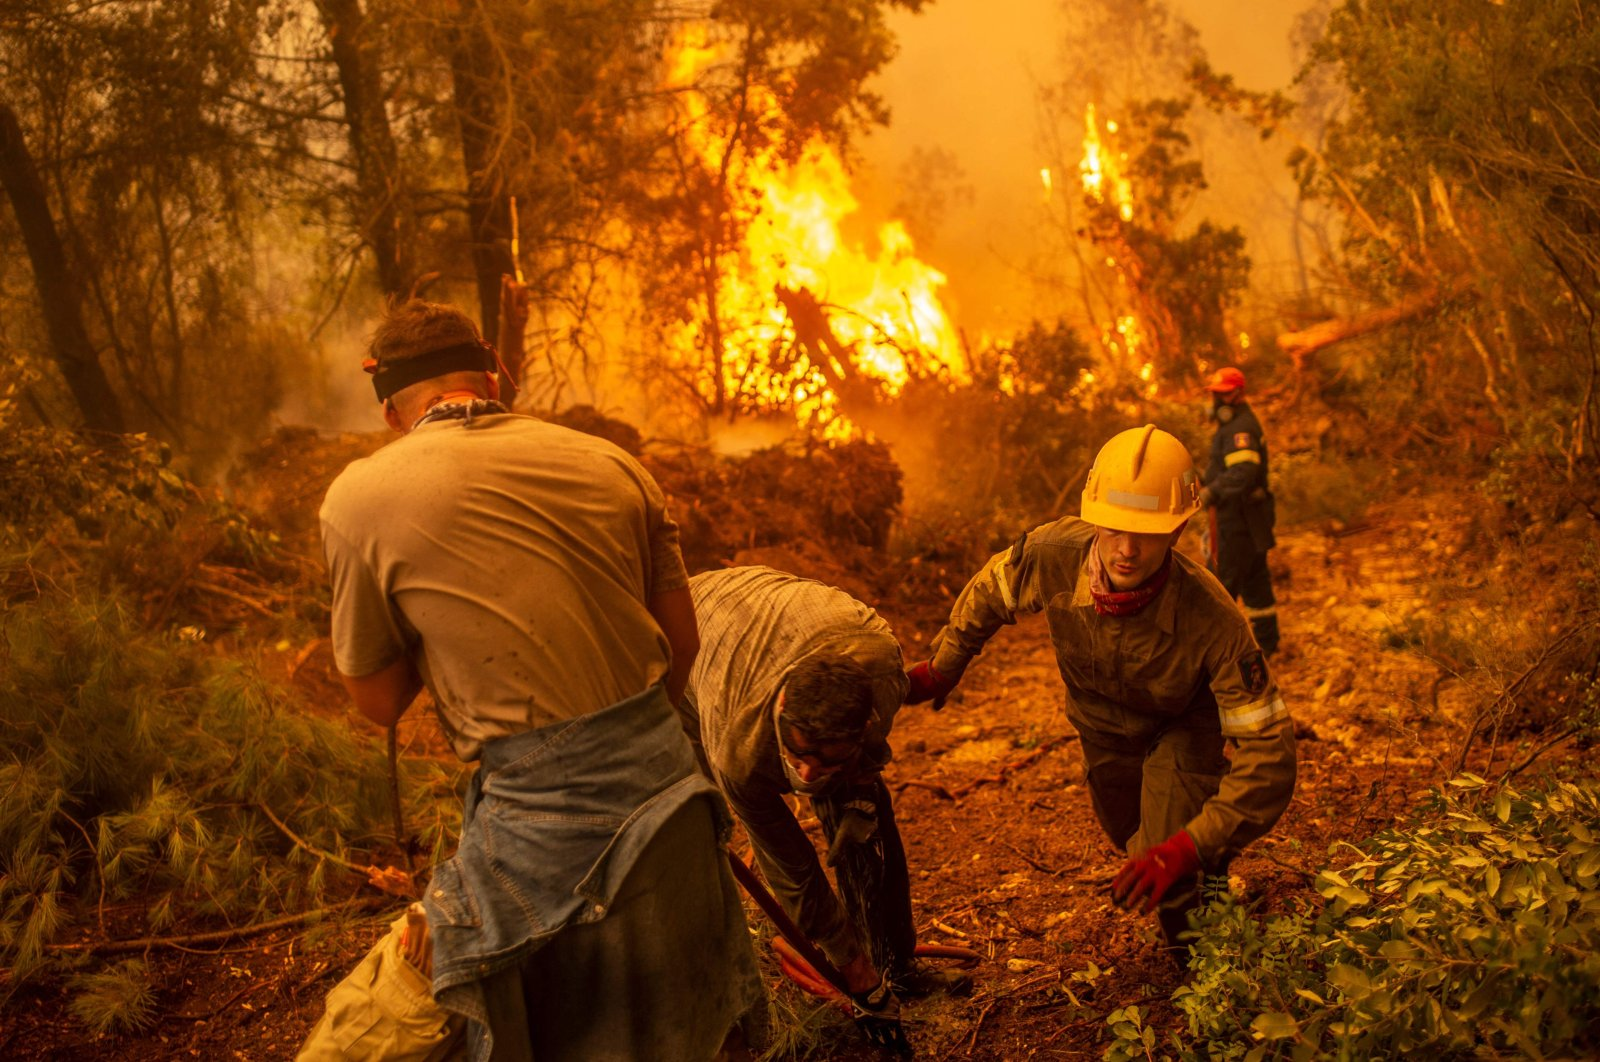 Firefighters and volunteers use a water hose near a burning blaze trying to extinguish a fire in the village of Glatsona on Evia (Euboea) island, Greece, August 9, 2021. (AFP Photo)